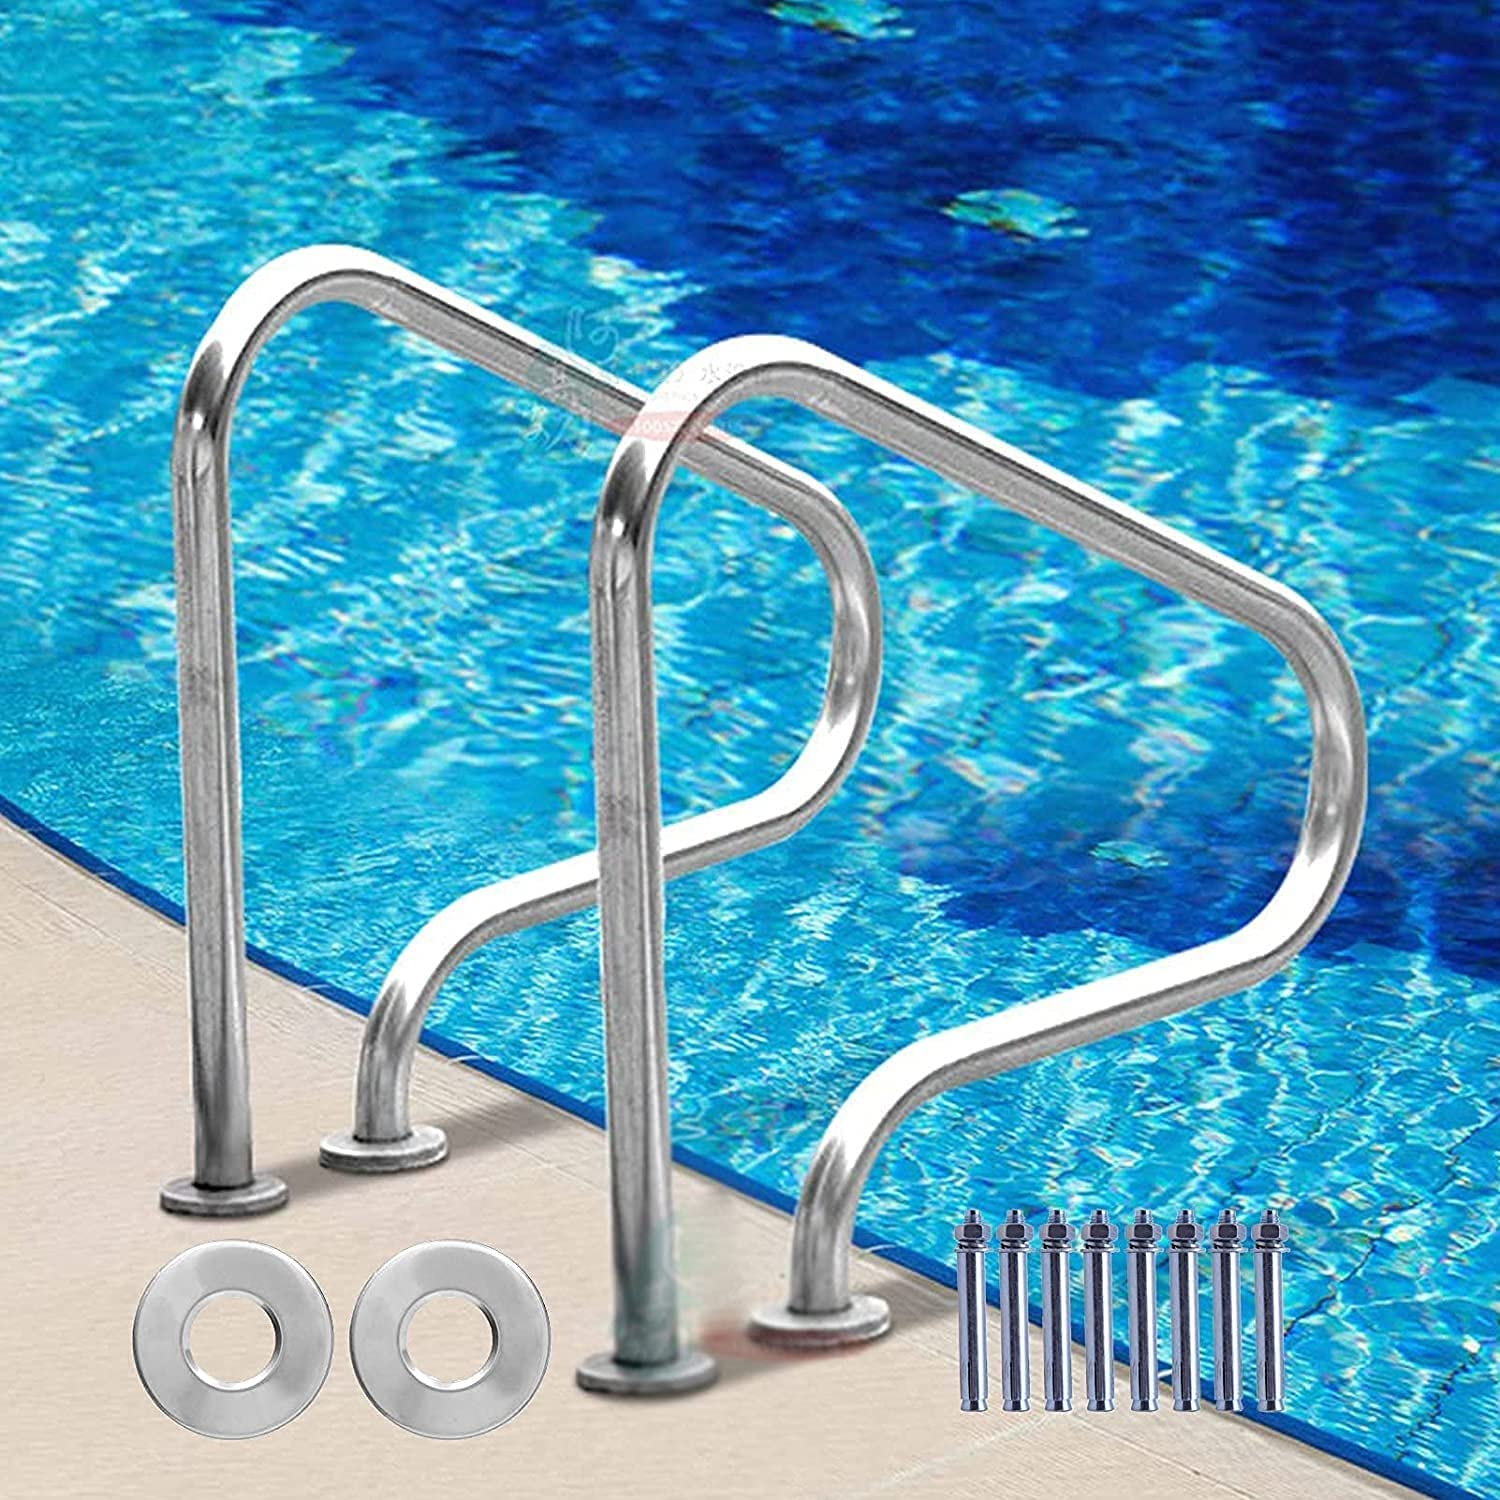 FCPLLTR Non-Slip Pool free Hand Rail Steel P 3-Bend 2021 Stainless Safety